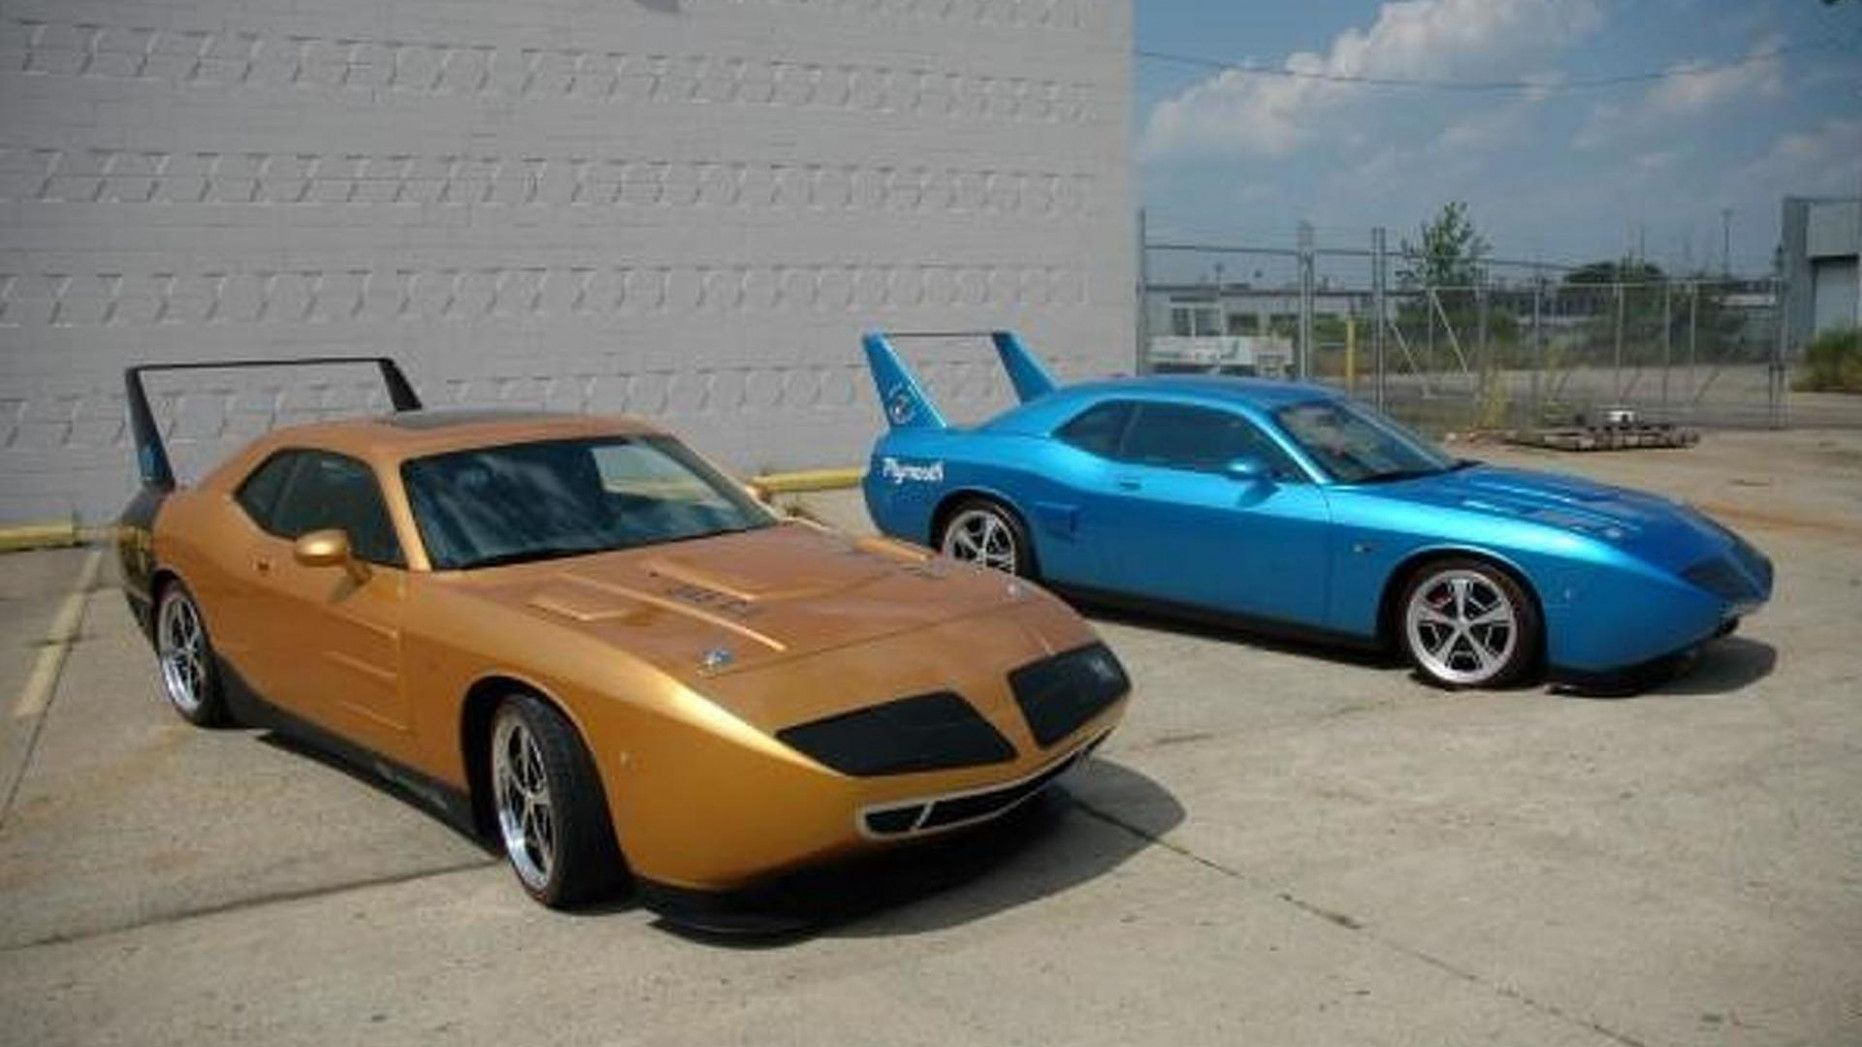 Plymouth Road Runner Superbird High Resolution Image 1 Of 12 Plymouth Superbird Dodge Muscle Cars Superbird